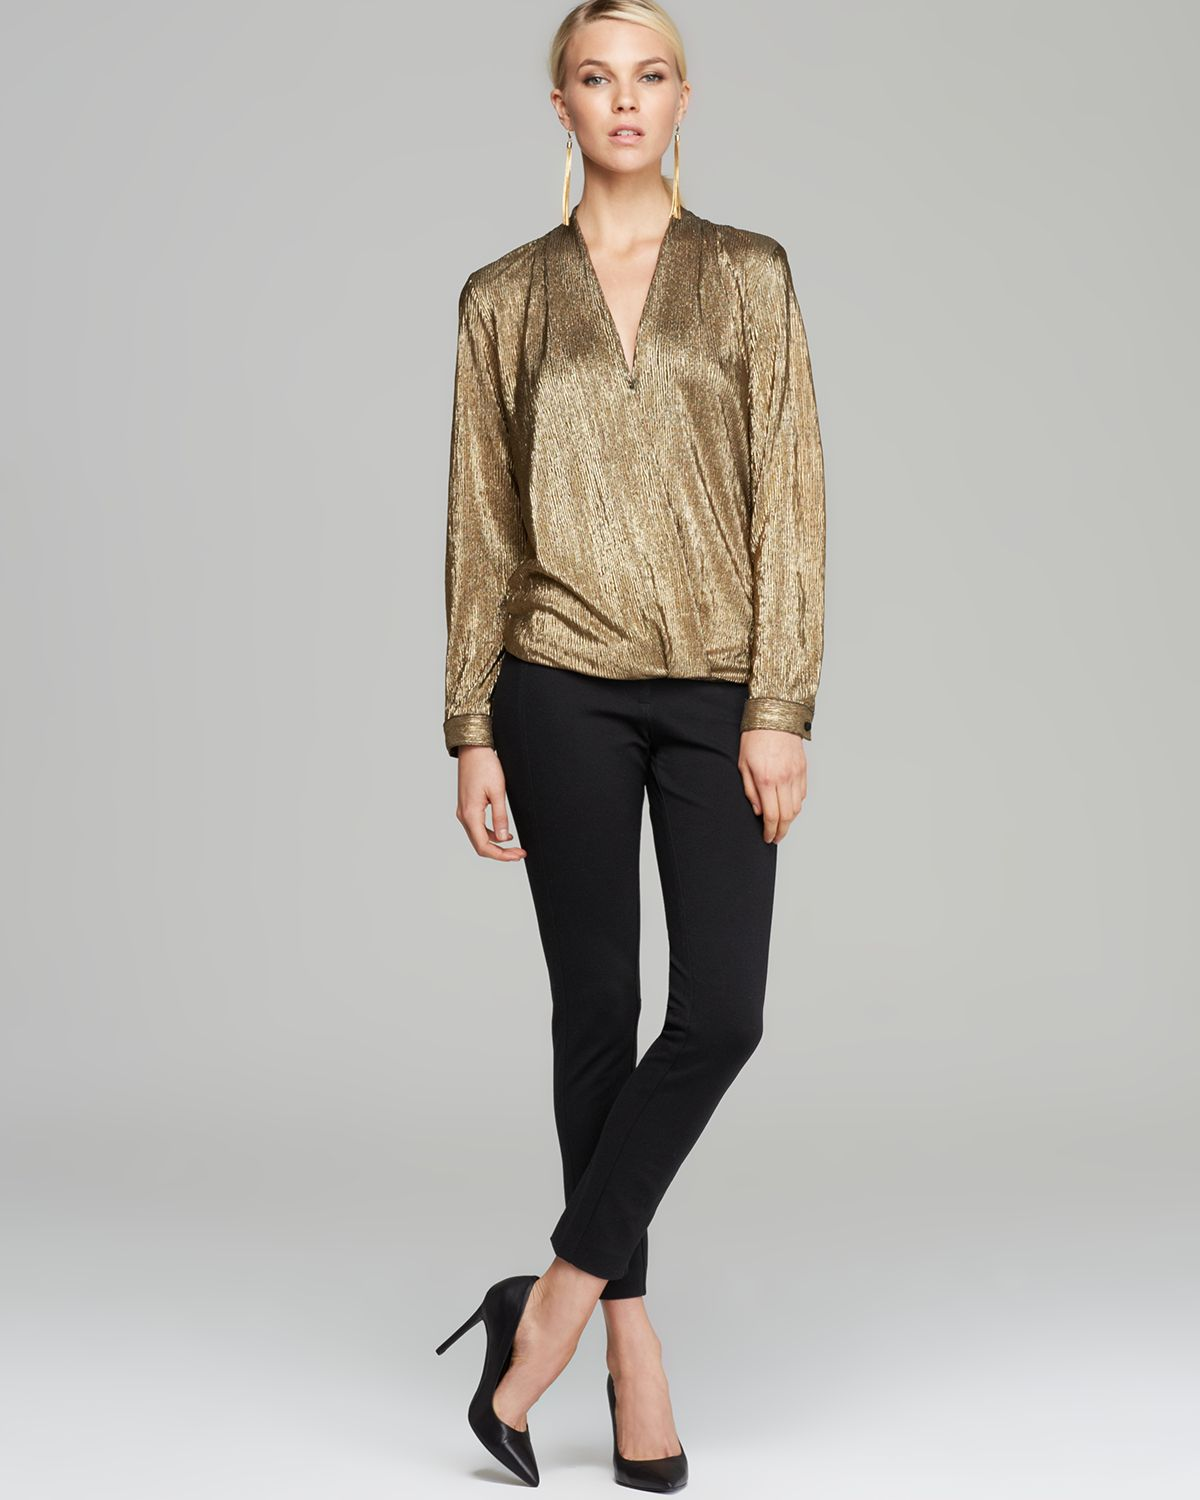 Sam & lavi Blouse Wynter Metallic in Metallic | Lyst